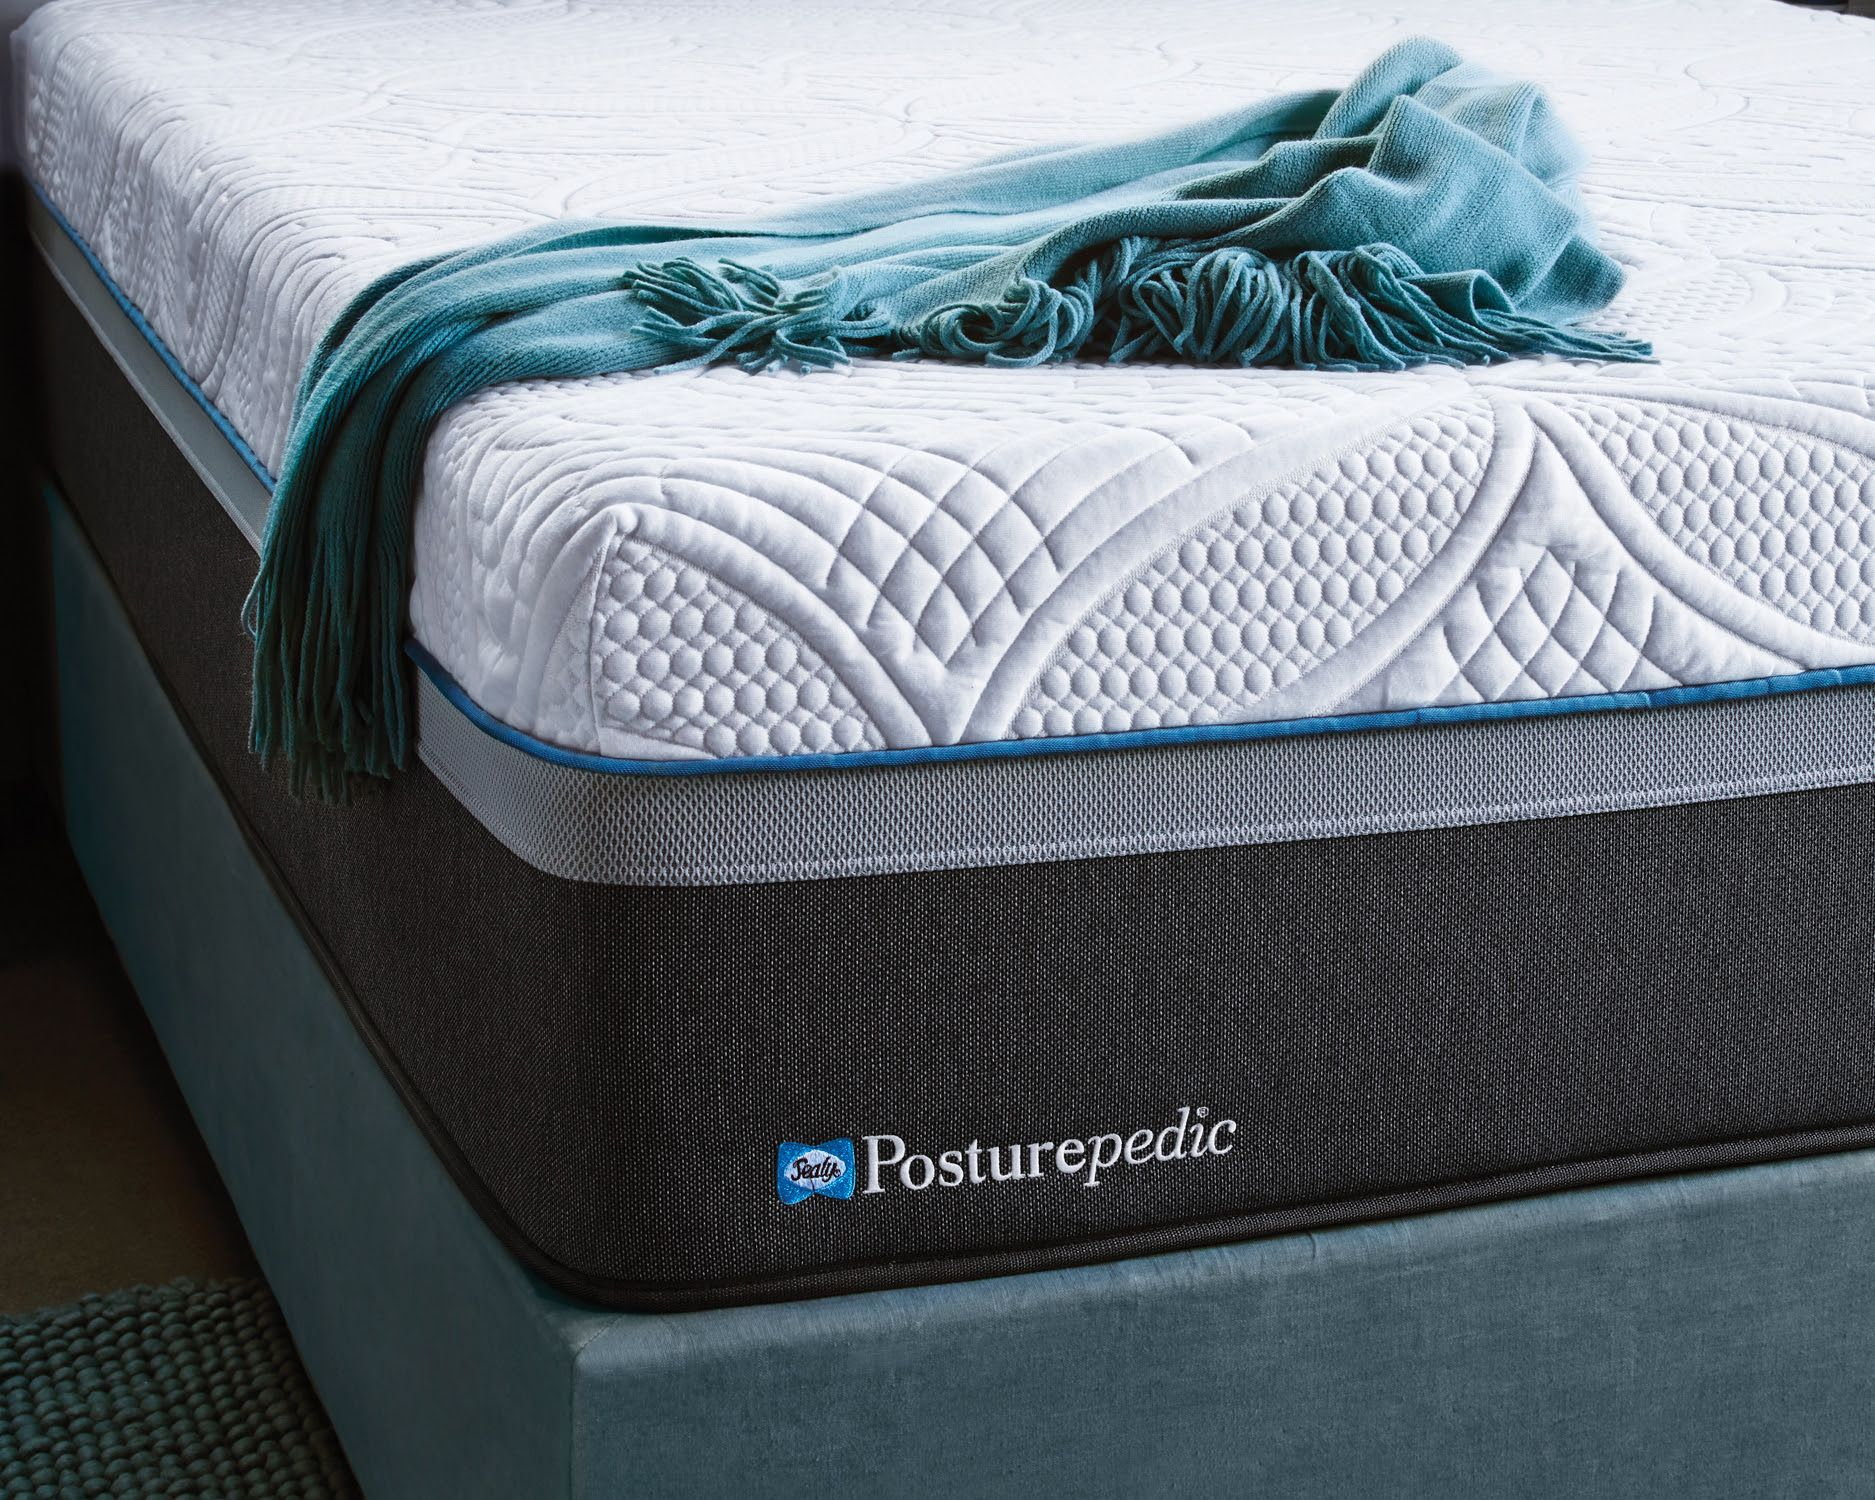 Best Traditional Mattress Get The Best Of Both Worlds With The Sealy Posturpedic Cobalt